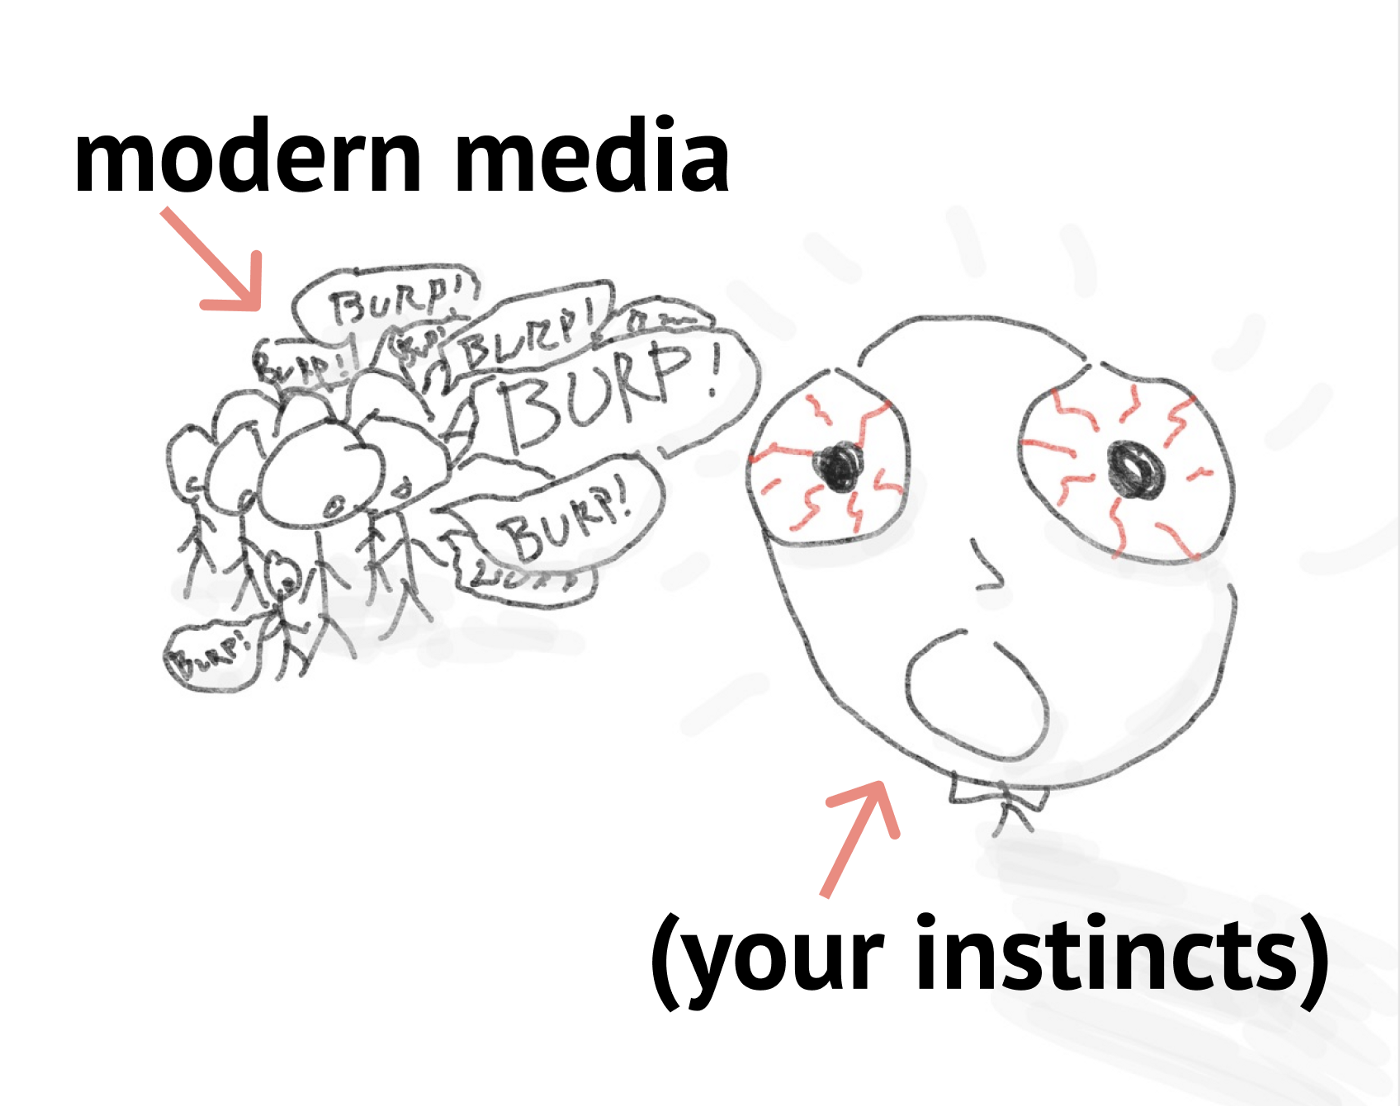 Modern media burps stories. Foreground:  a blood-shot eyed stick figure freaks out (your instincts).